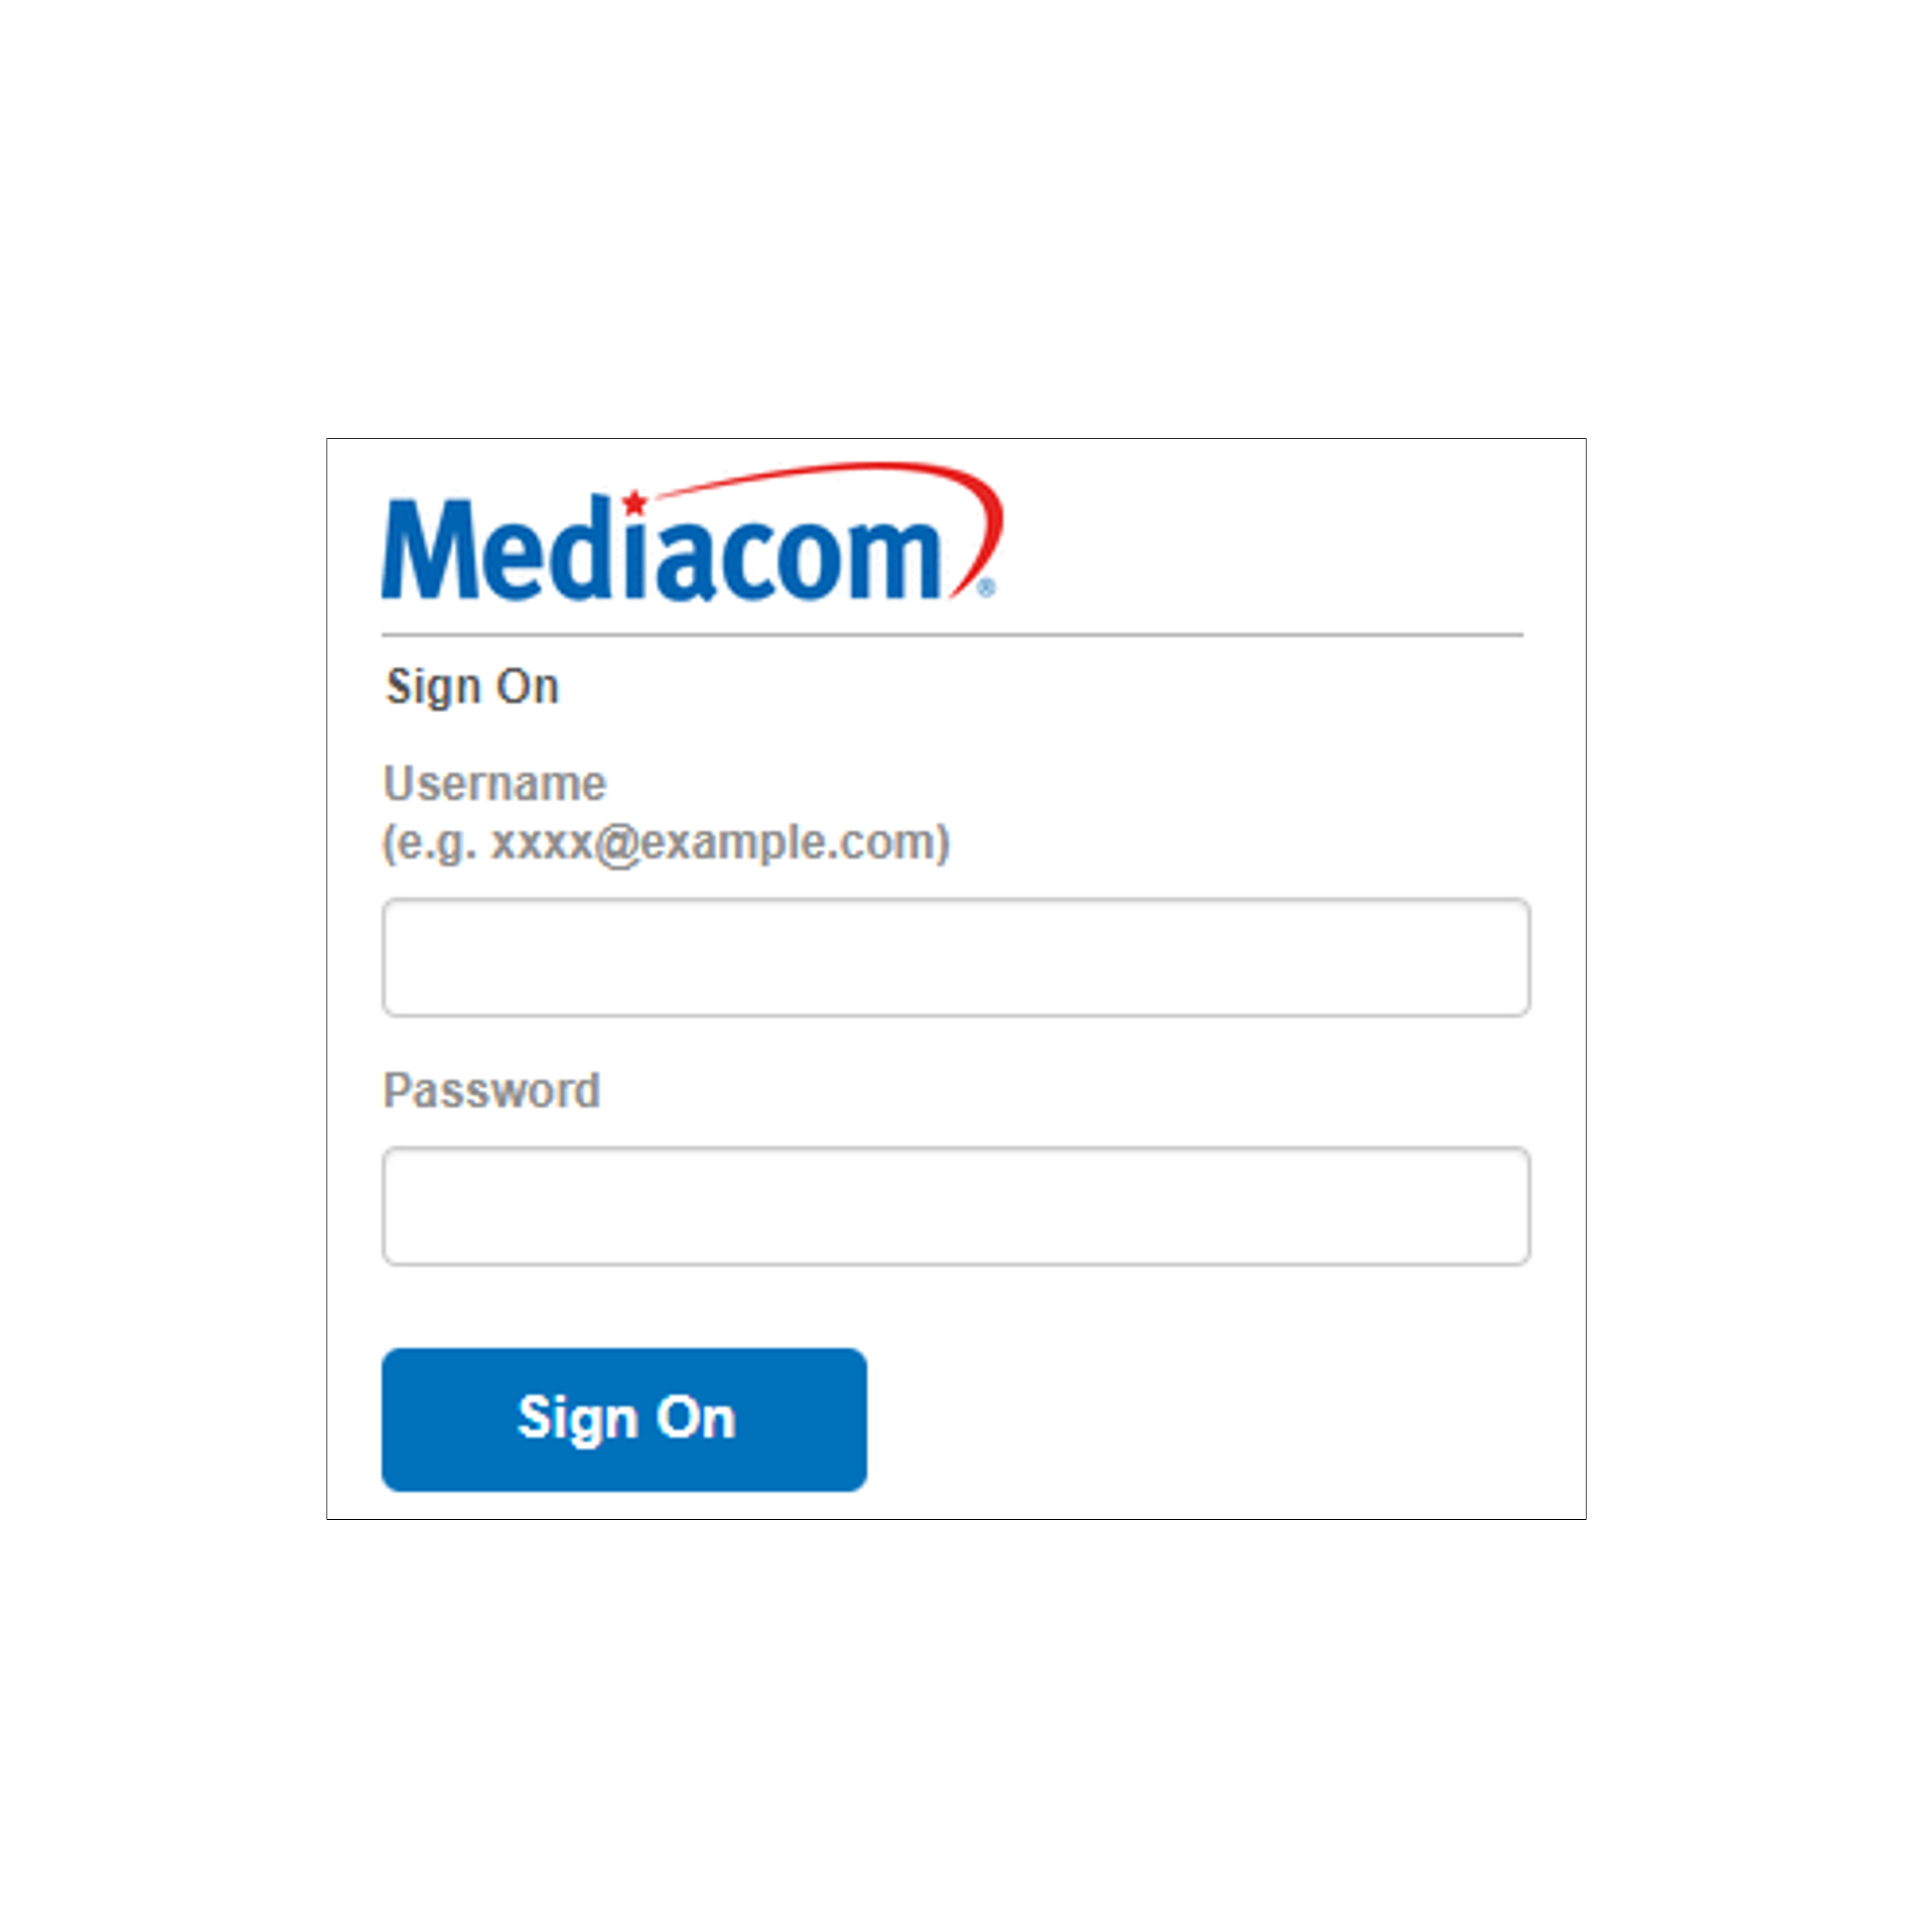 Changing Mediacom ID / Mediacom Email Password